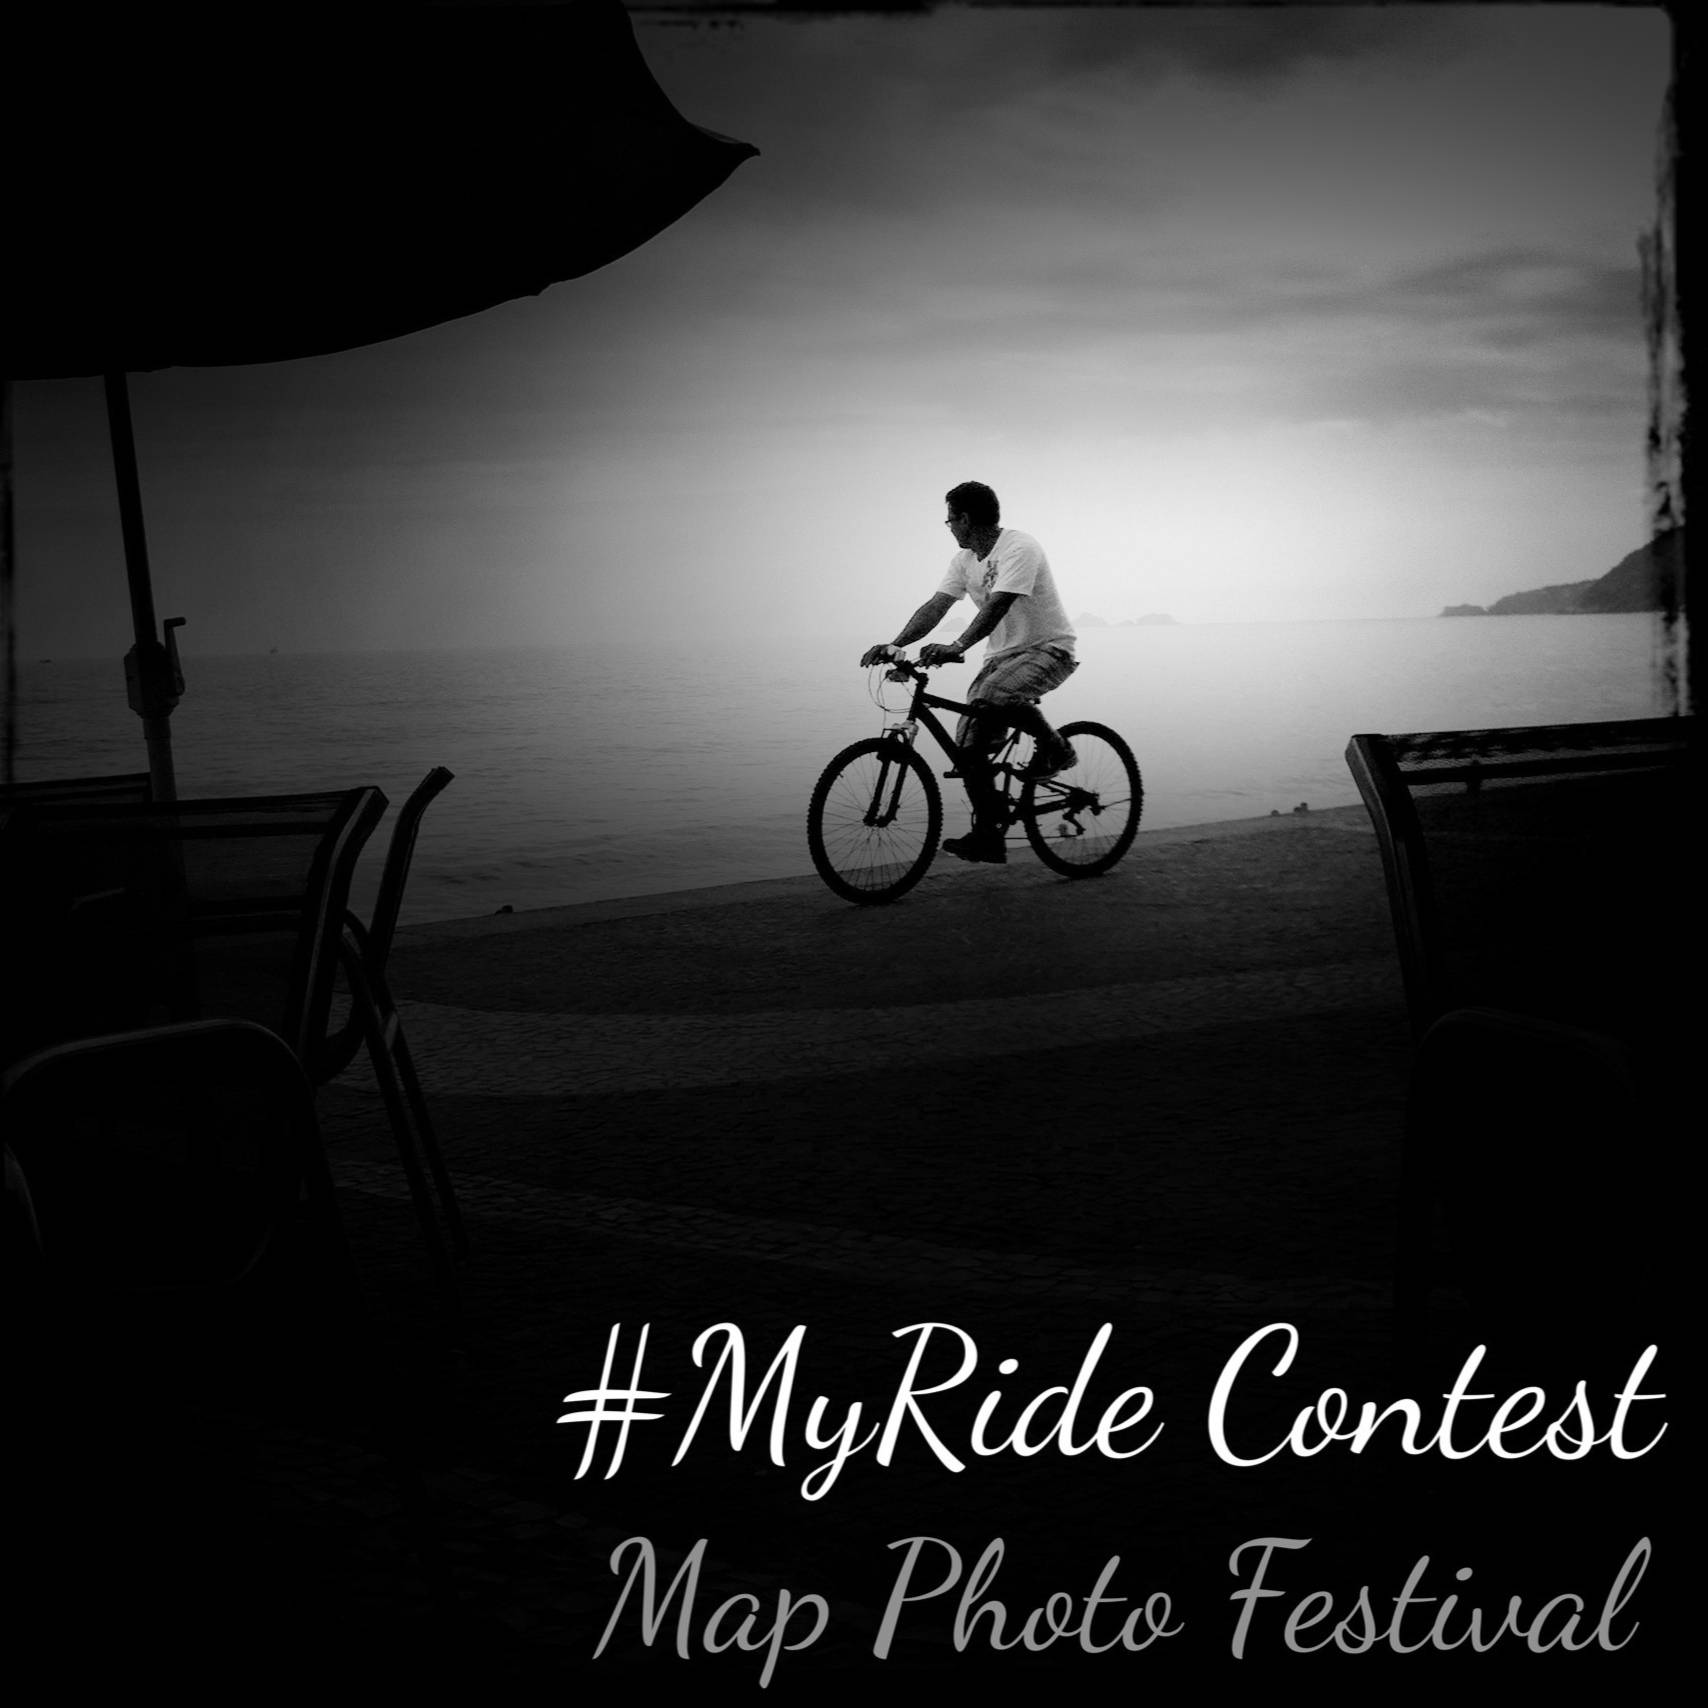 Myride contest. More than 6.500 Pics submitted. Now Election Time.